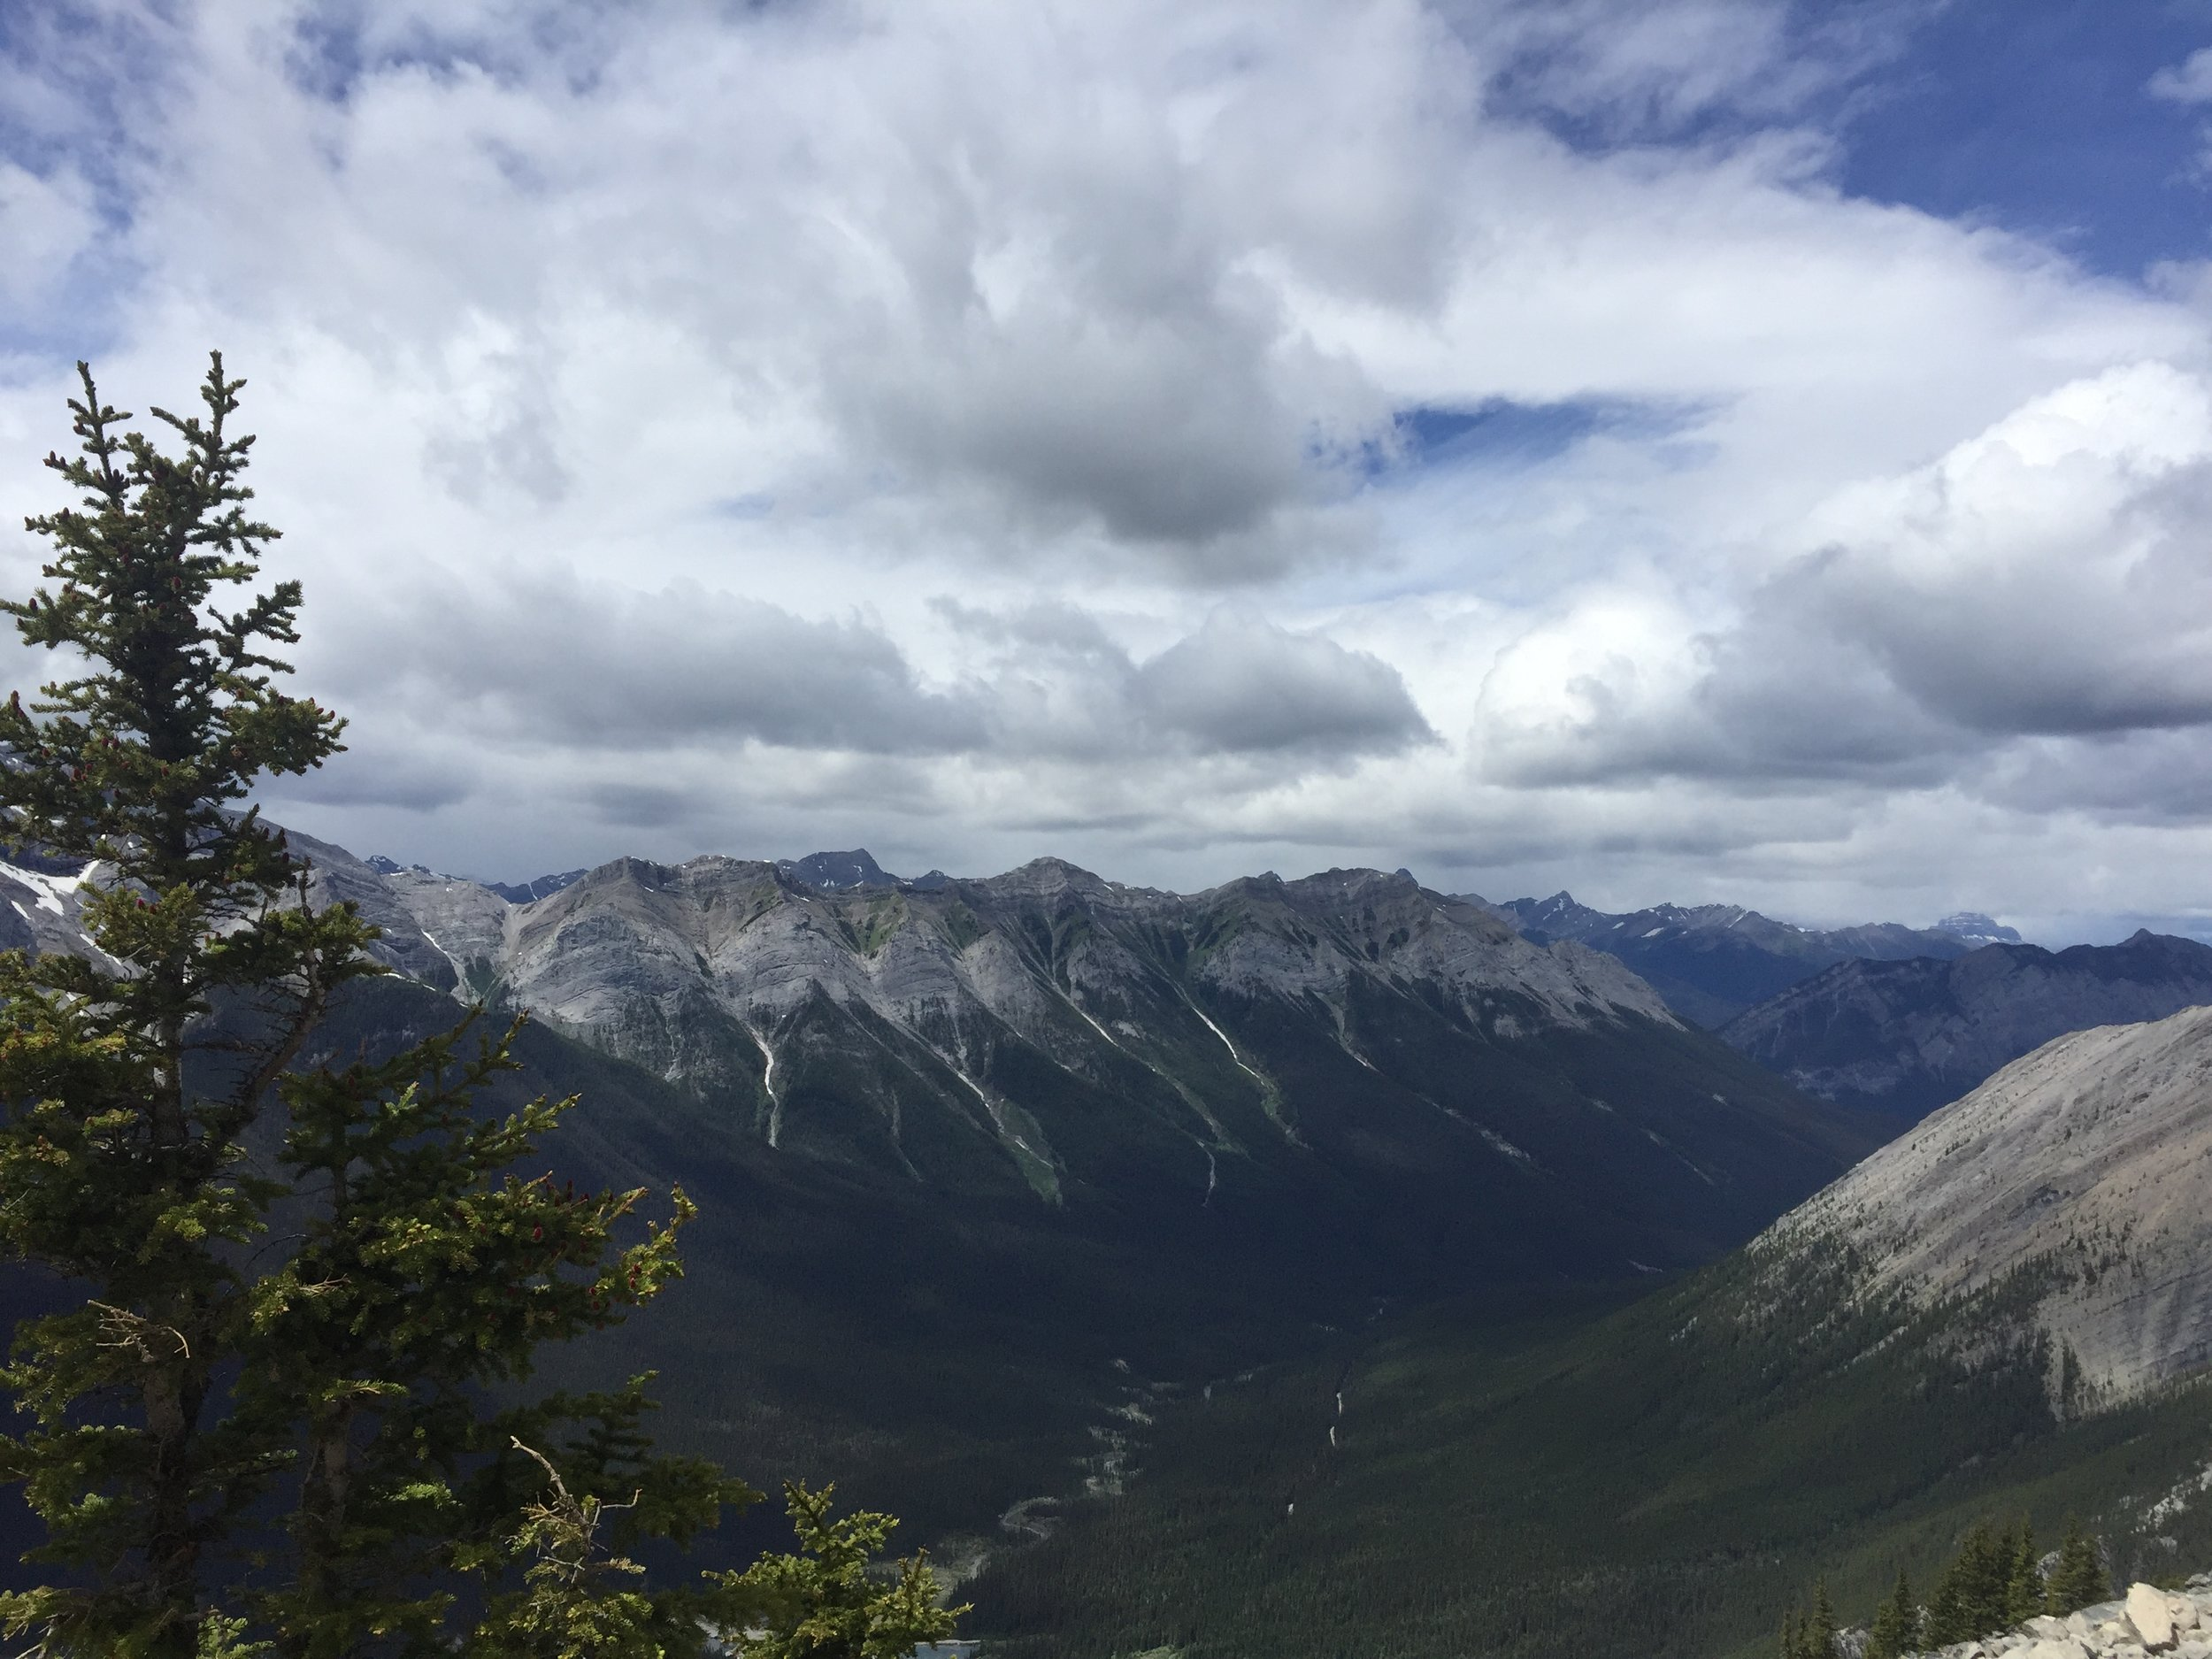 Views from trail to Ha Ling Peak in Kananaskis Country